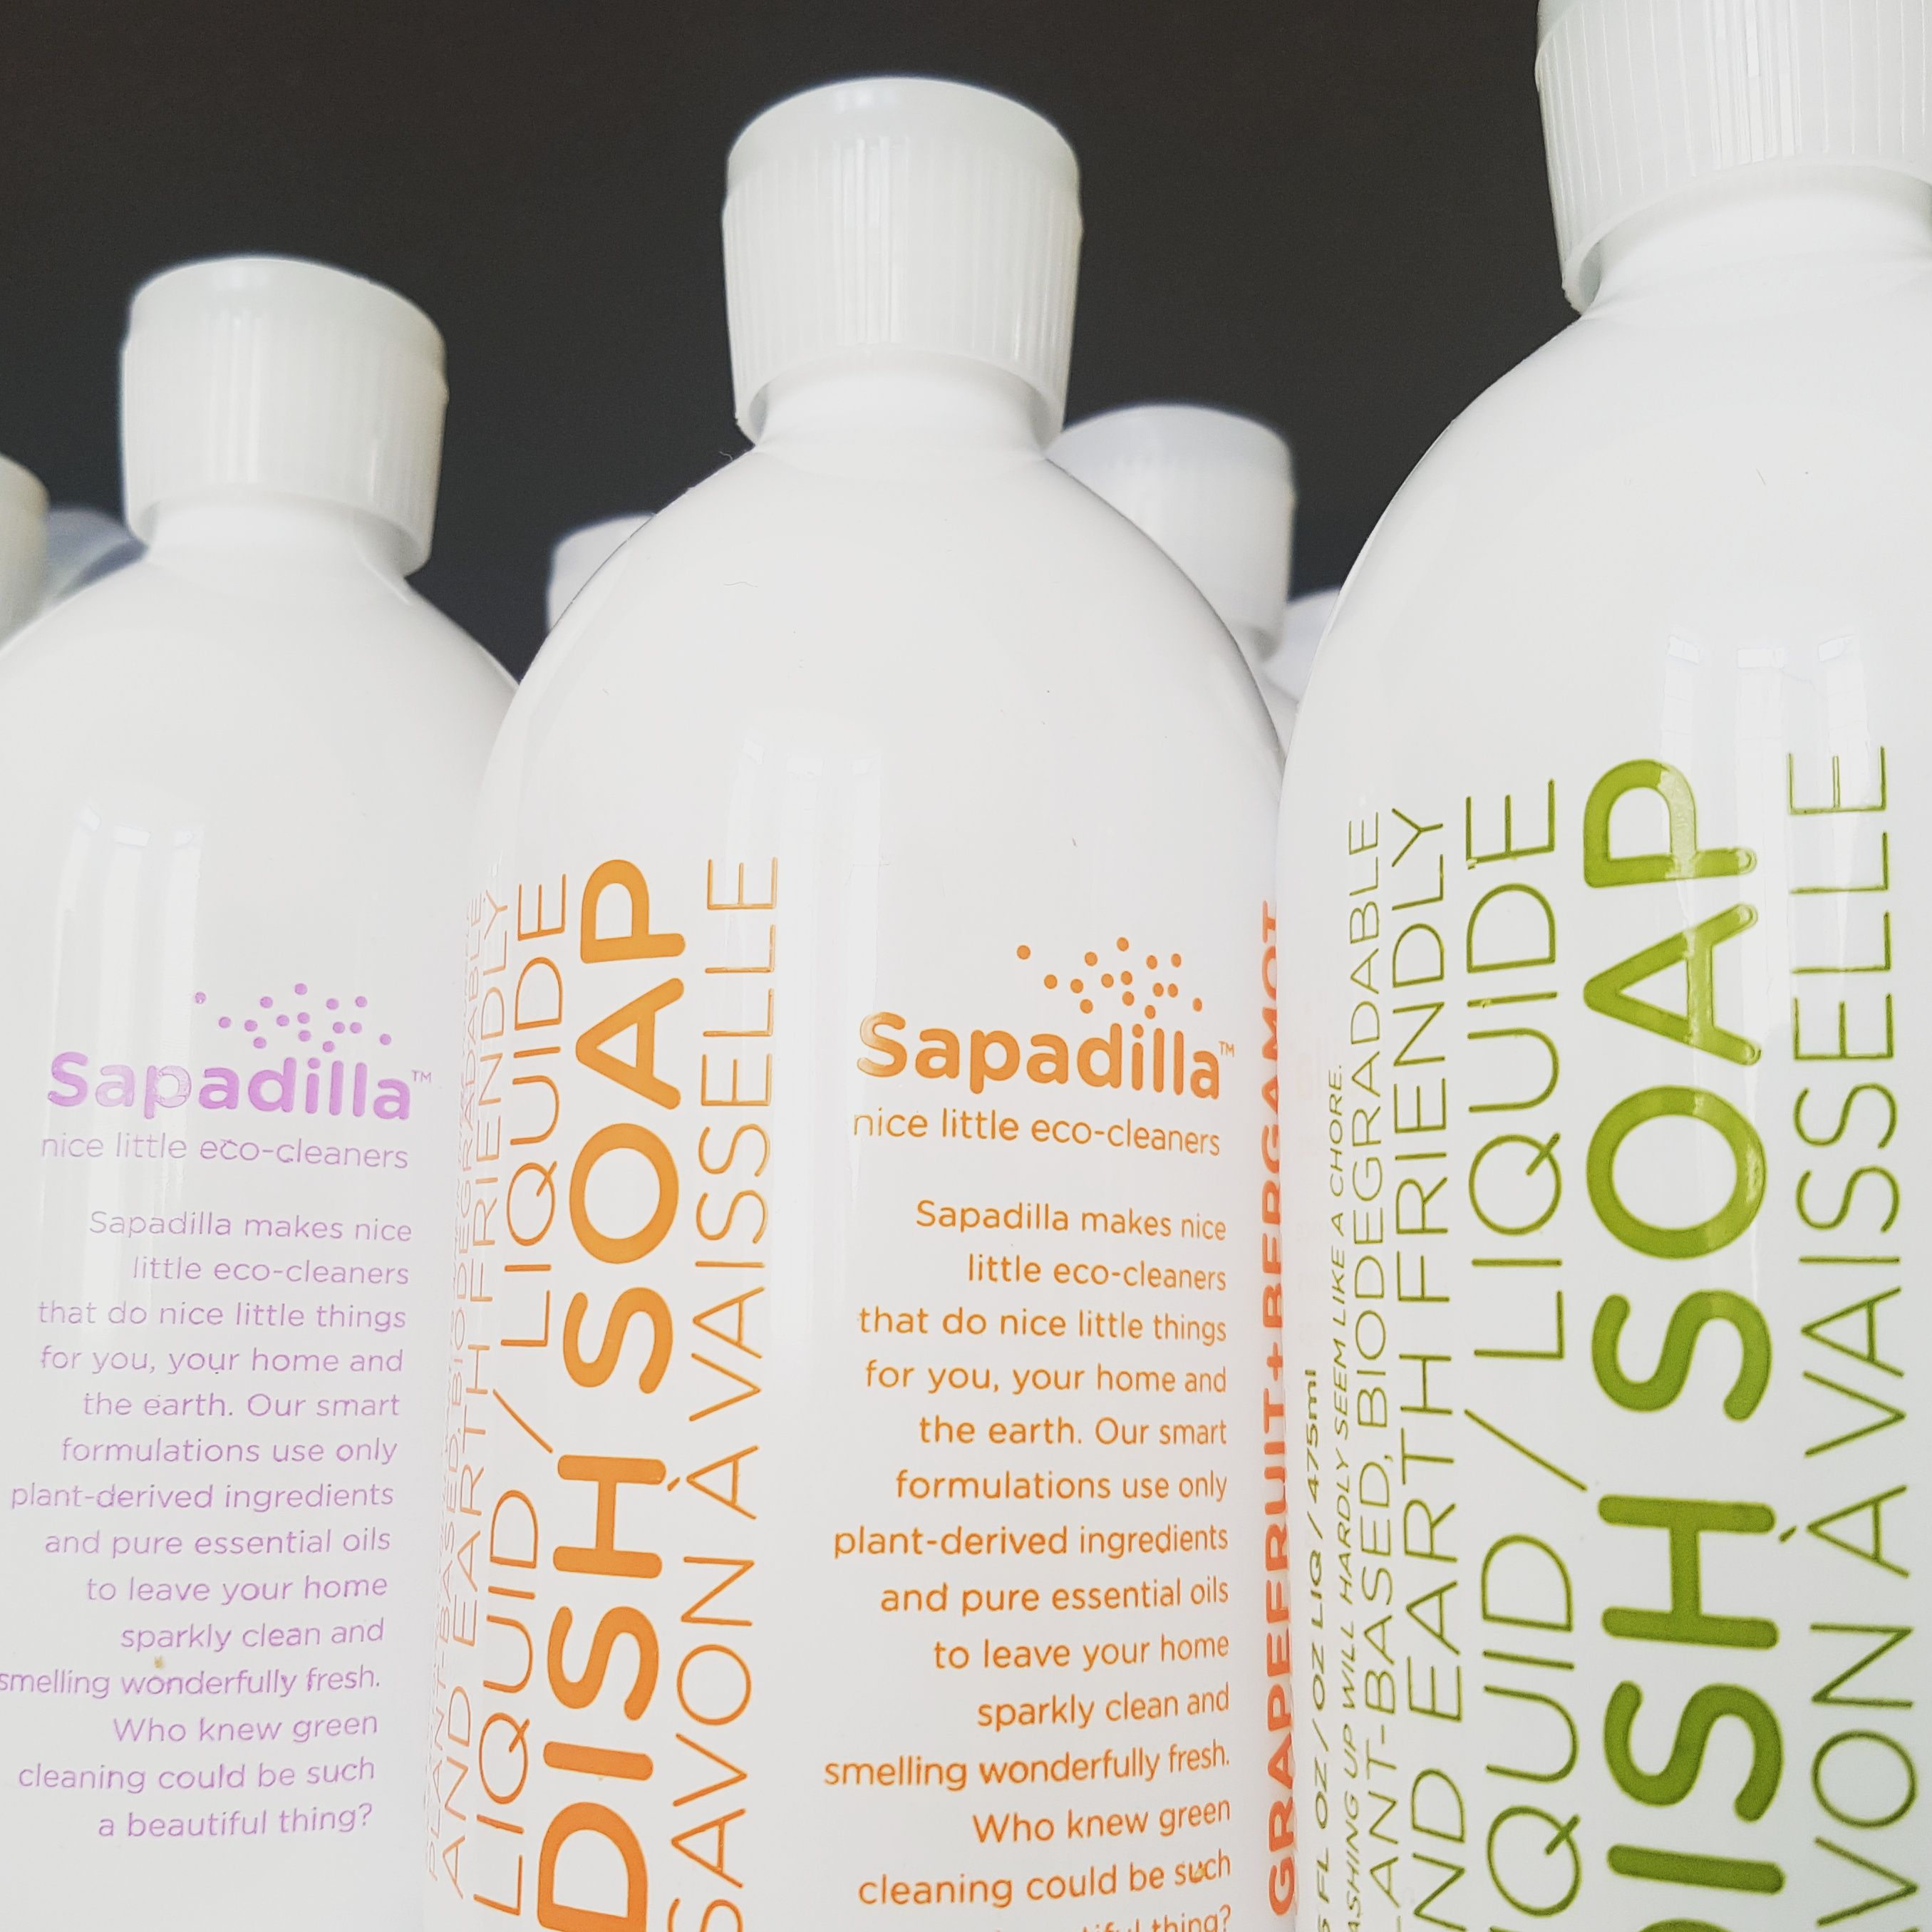 These incredible ecodish soaps from Sapadilla are made